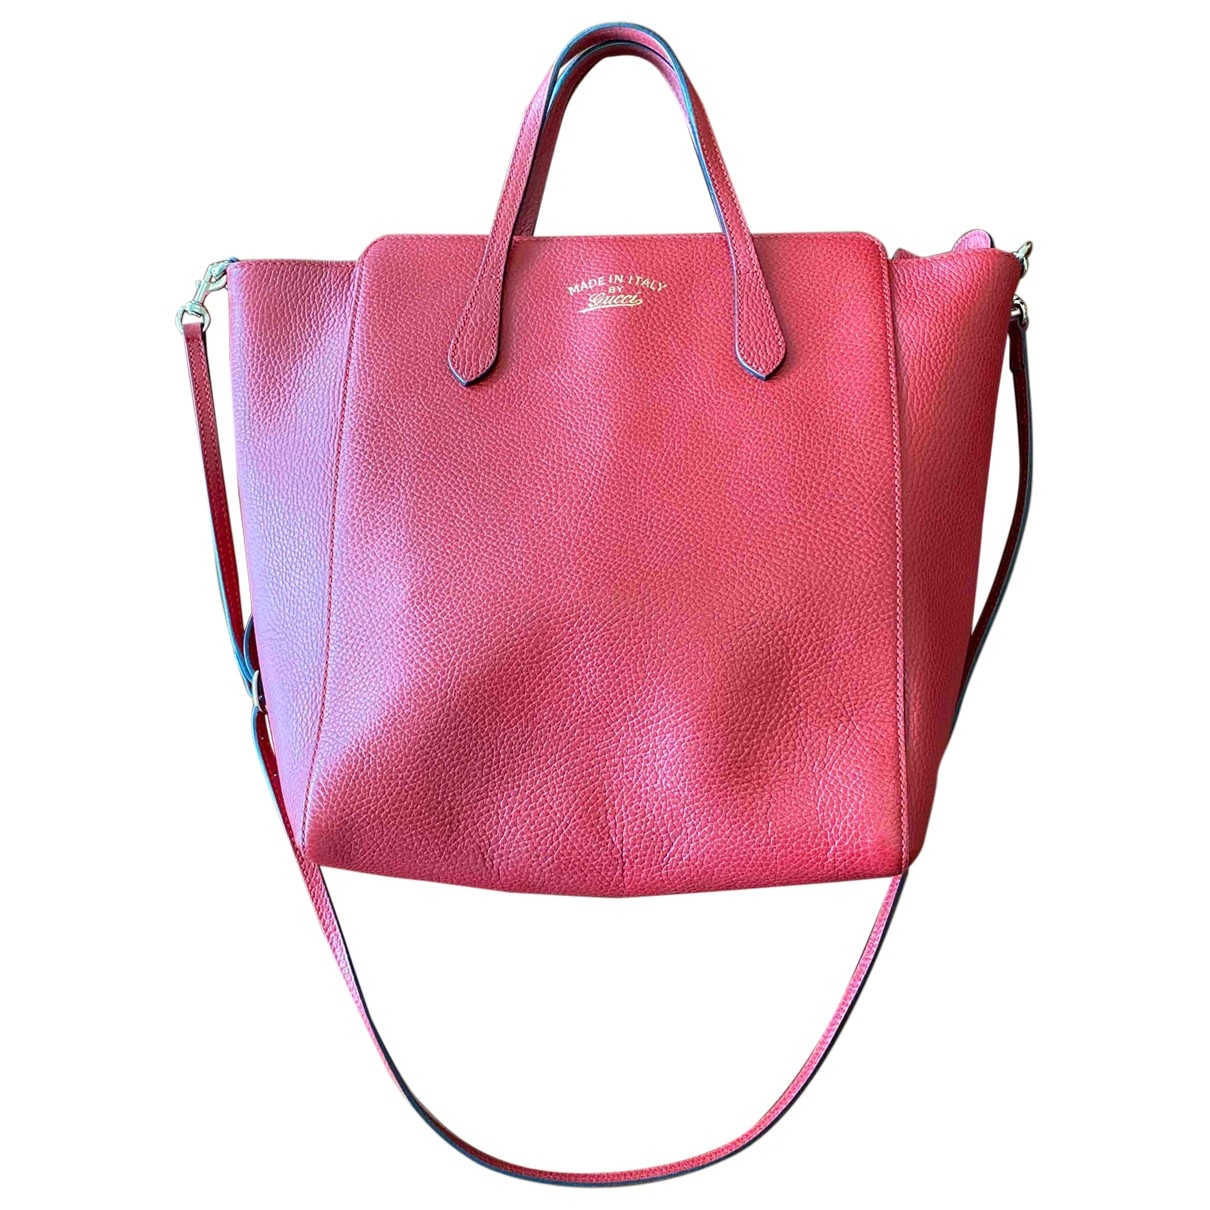 Gucci Swing Red Patent leather handbag for Women \N